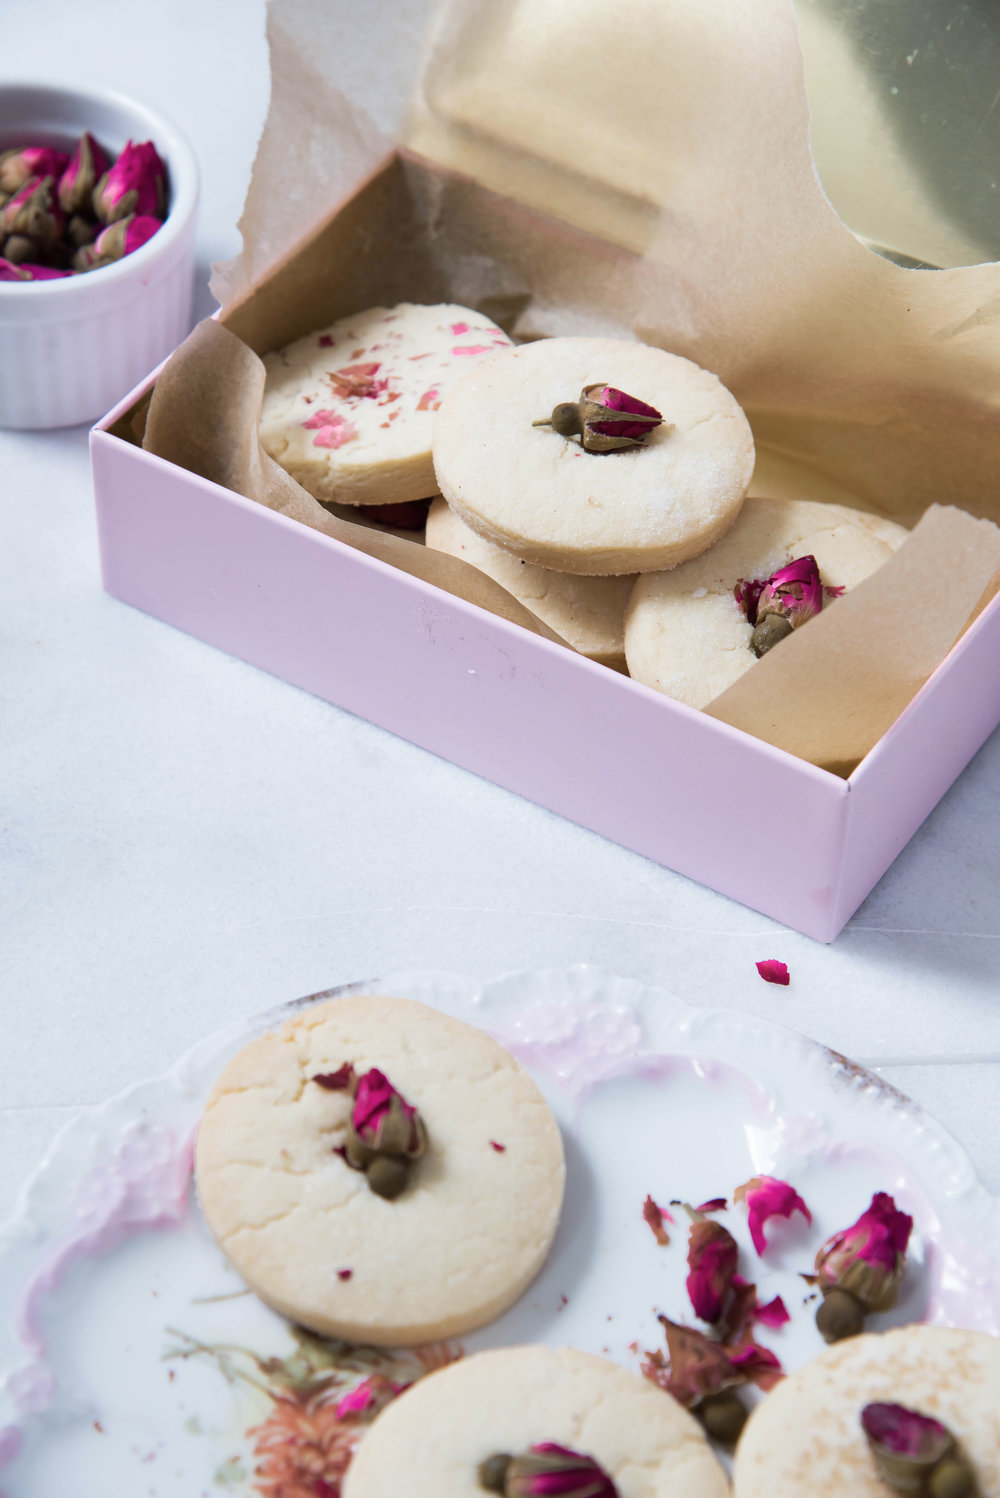 ROSE & IVY Journal Rose Sugar Cookies